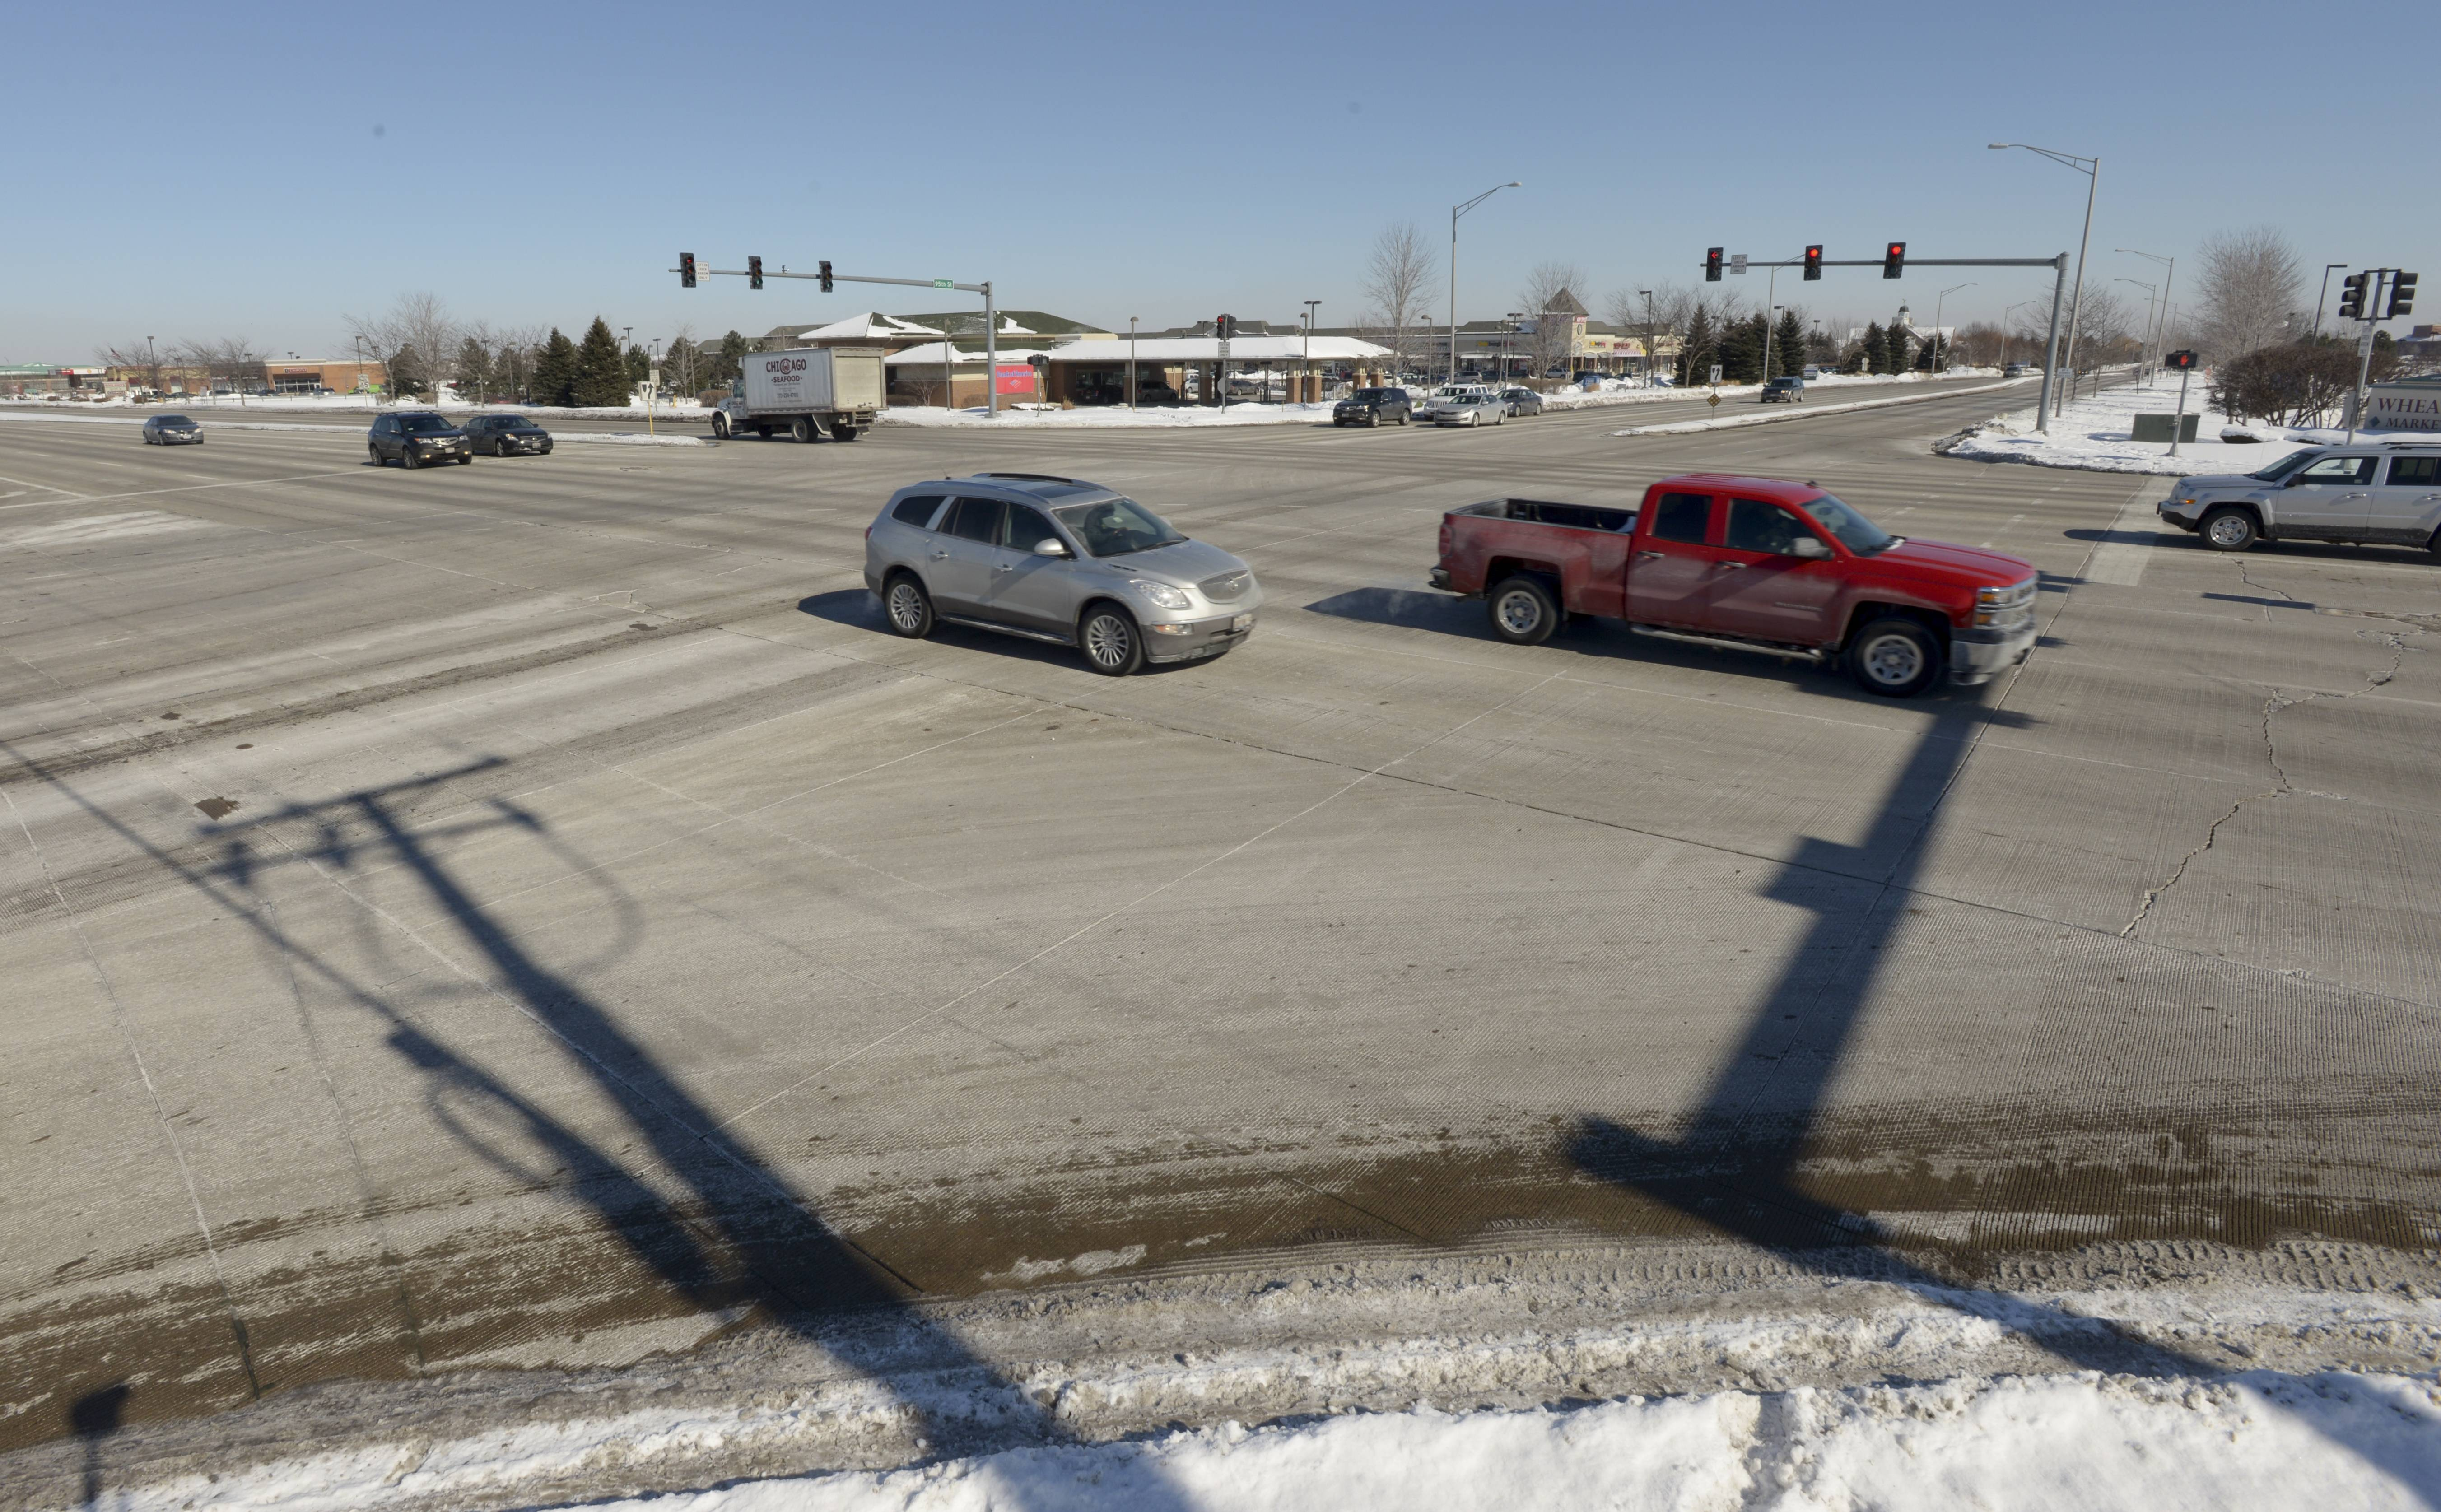 There were 58 crashes in 2013 at the Naperville intersection of Route 59 and 95th Street, which tied it for the highest number citywide with the intersection of Route 59 and Diehl Road.